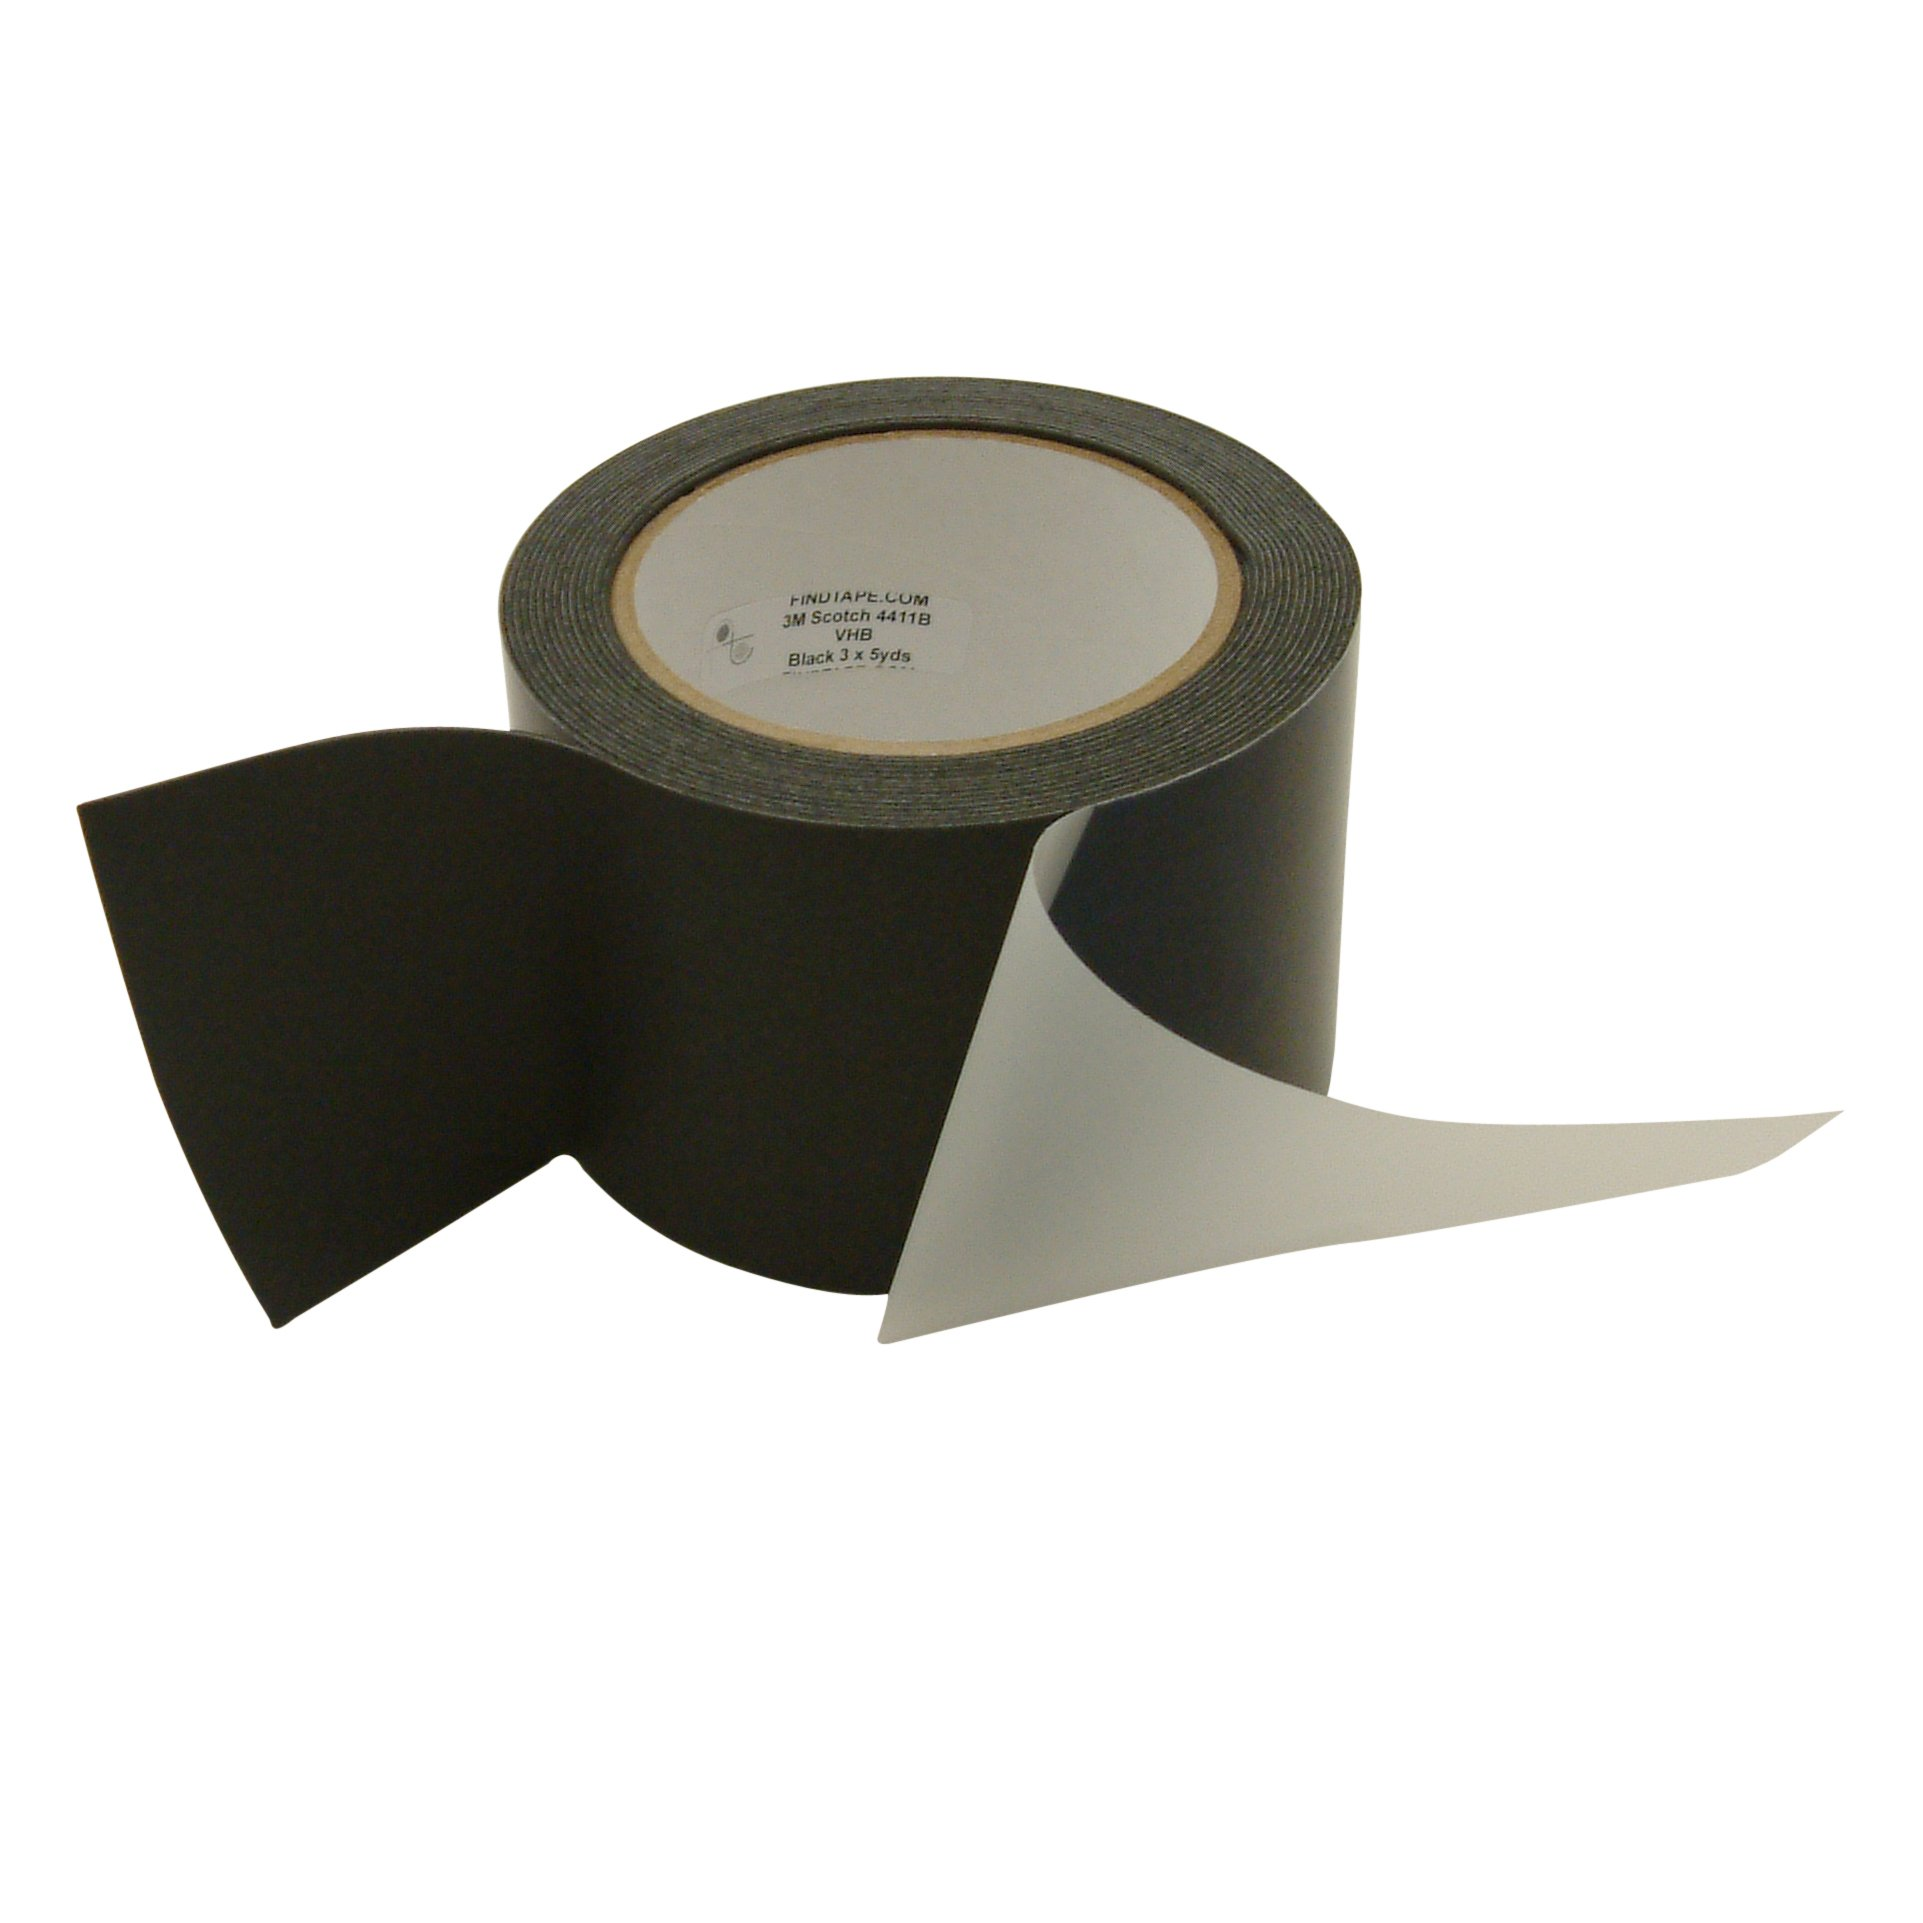 3M 4411B/35 Scotch 4411 Extreme Sealing Tape: 3'' x 15 ft, Black